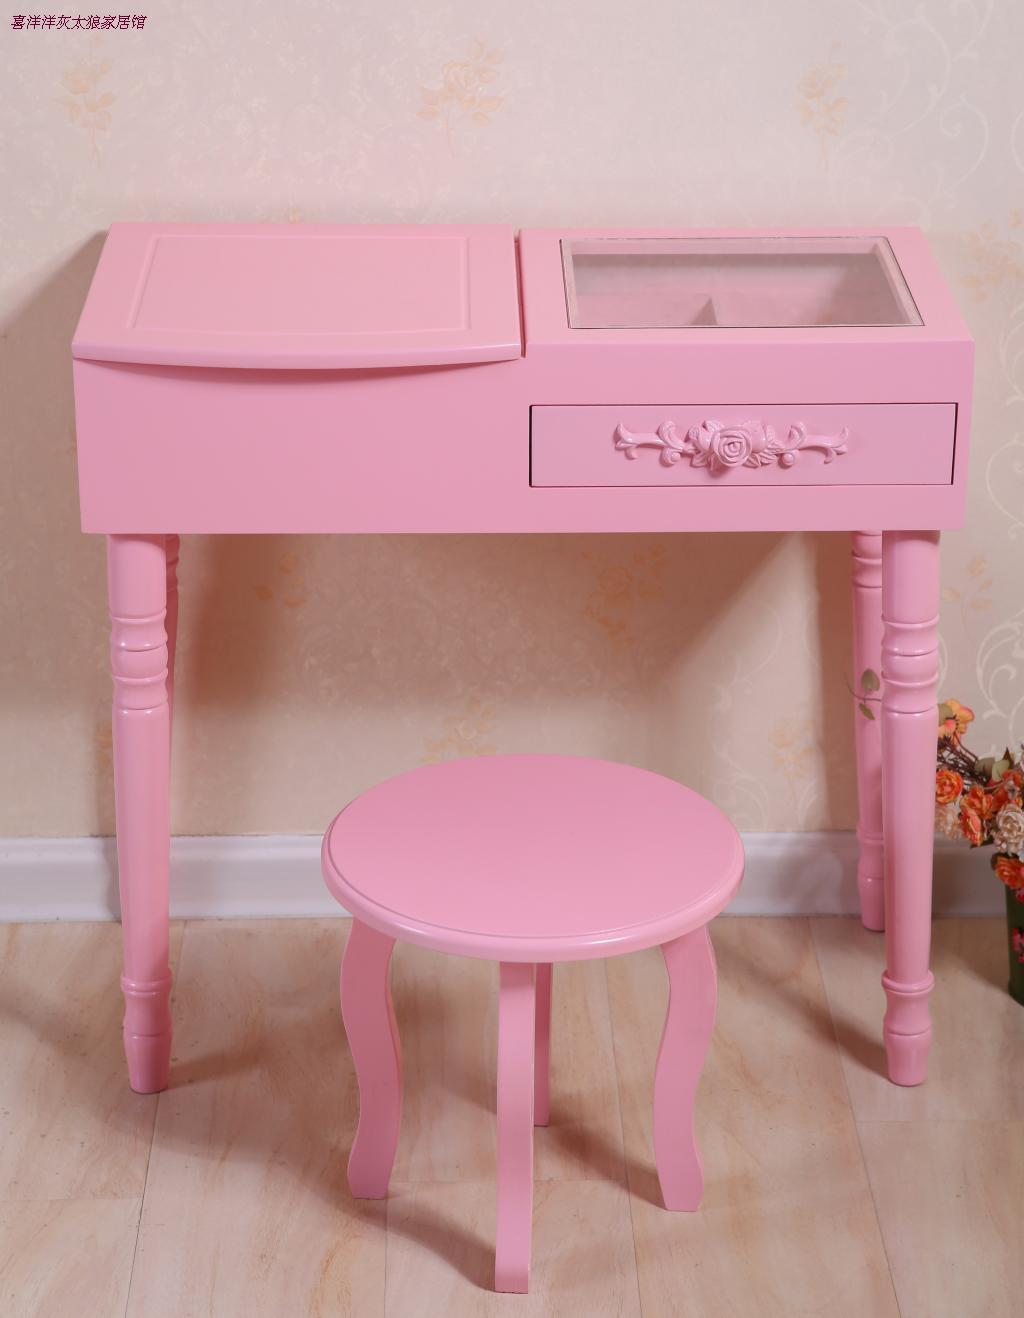 Dressing Table With Mirror And Stool: Minimalist Dressing Table Makeup Organizer Bedroom Dresser